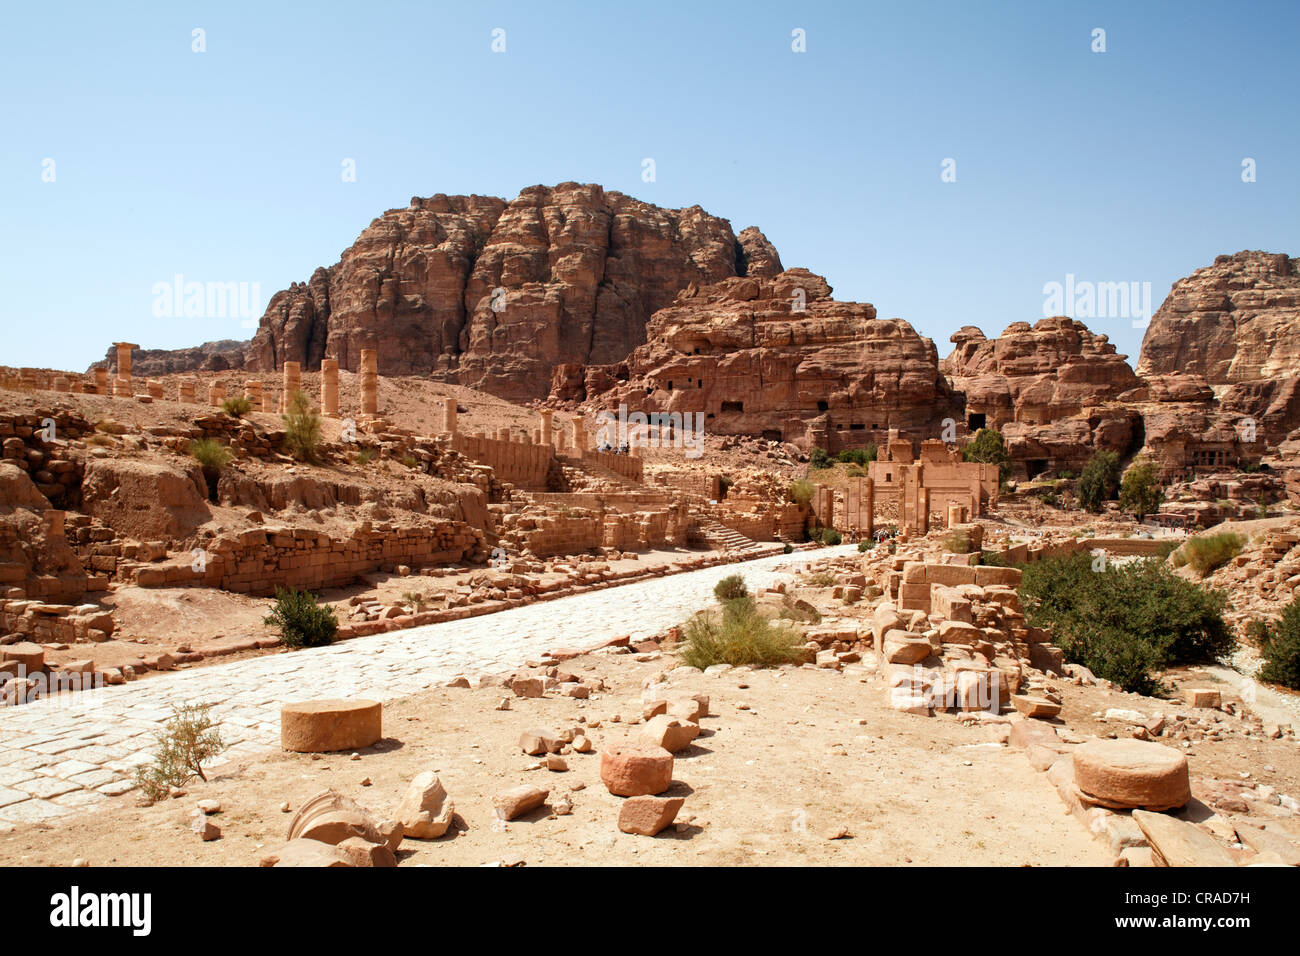 Colonnaded street, Petra, the capital city of the Nabataeans, rock city, UNESCO World Hertage Site, Wadi Musa - Stock Image